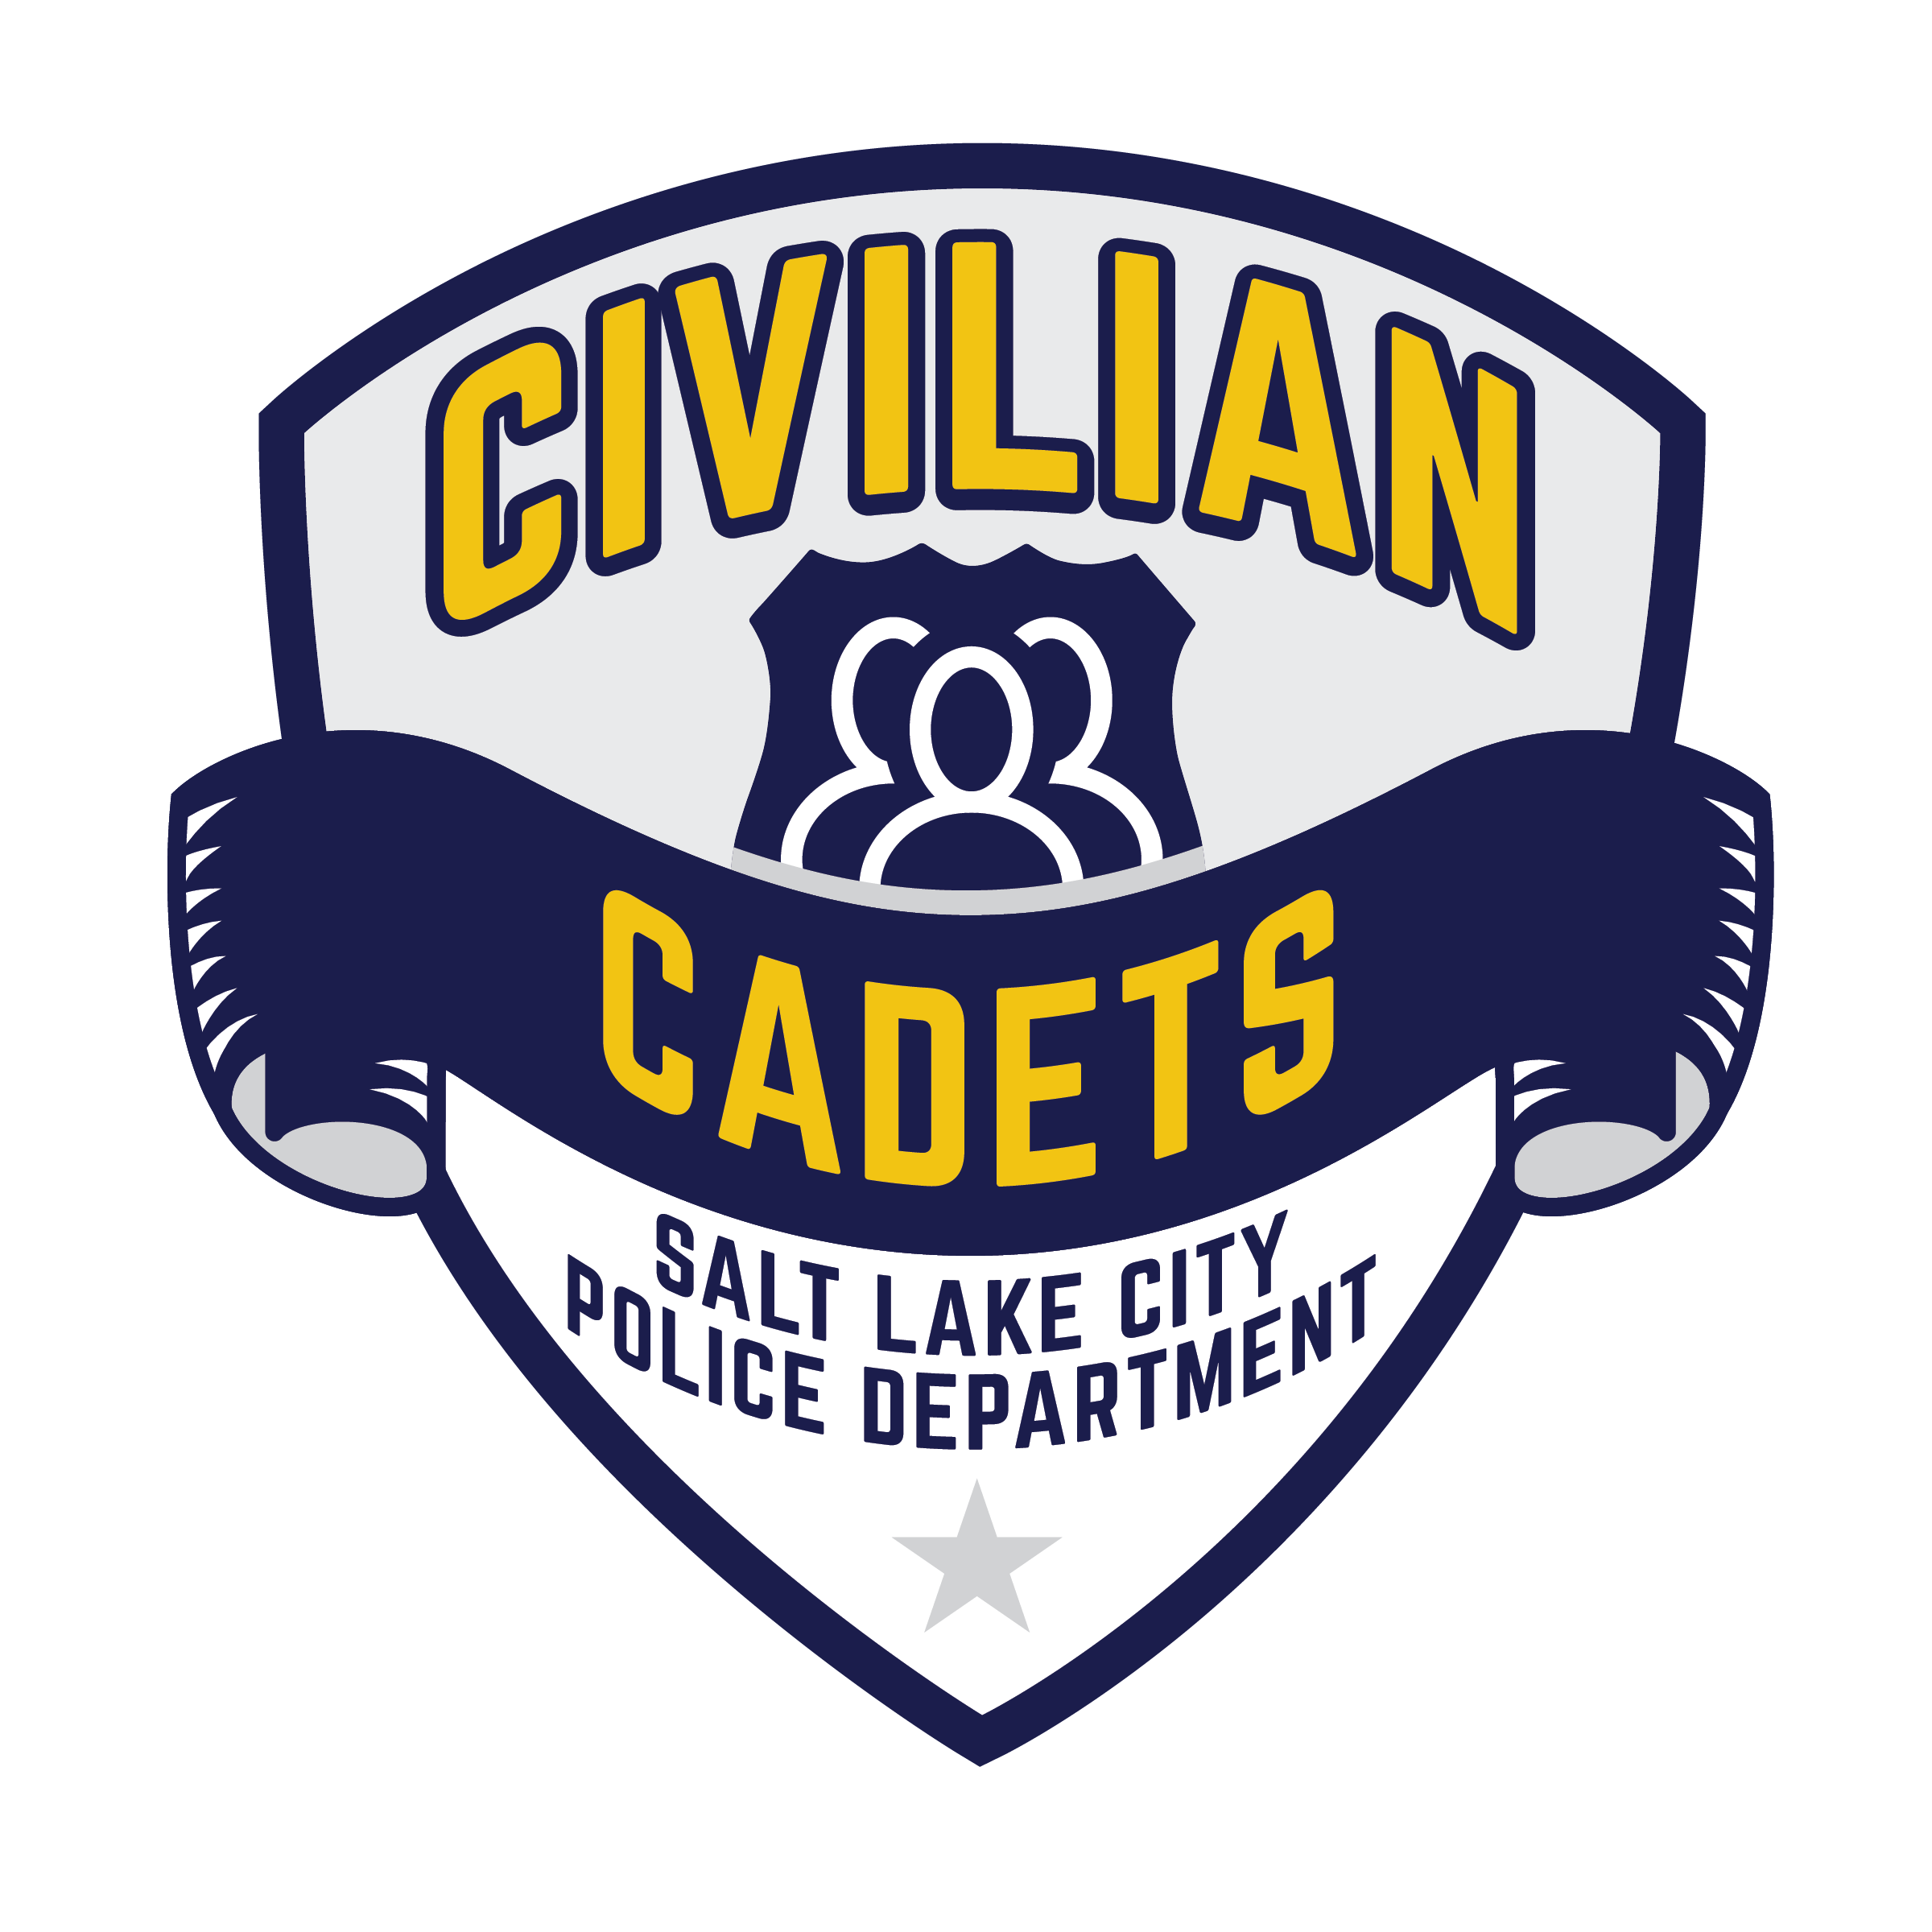 CivilianCadet